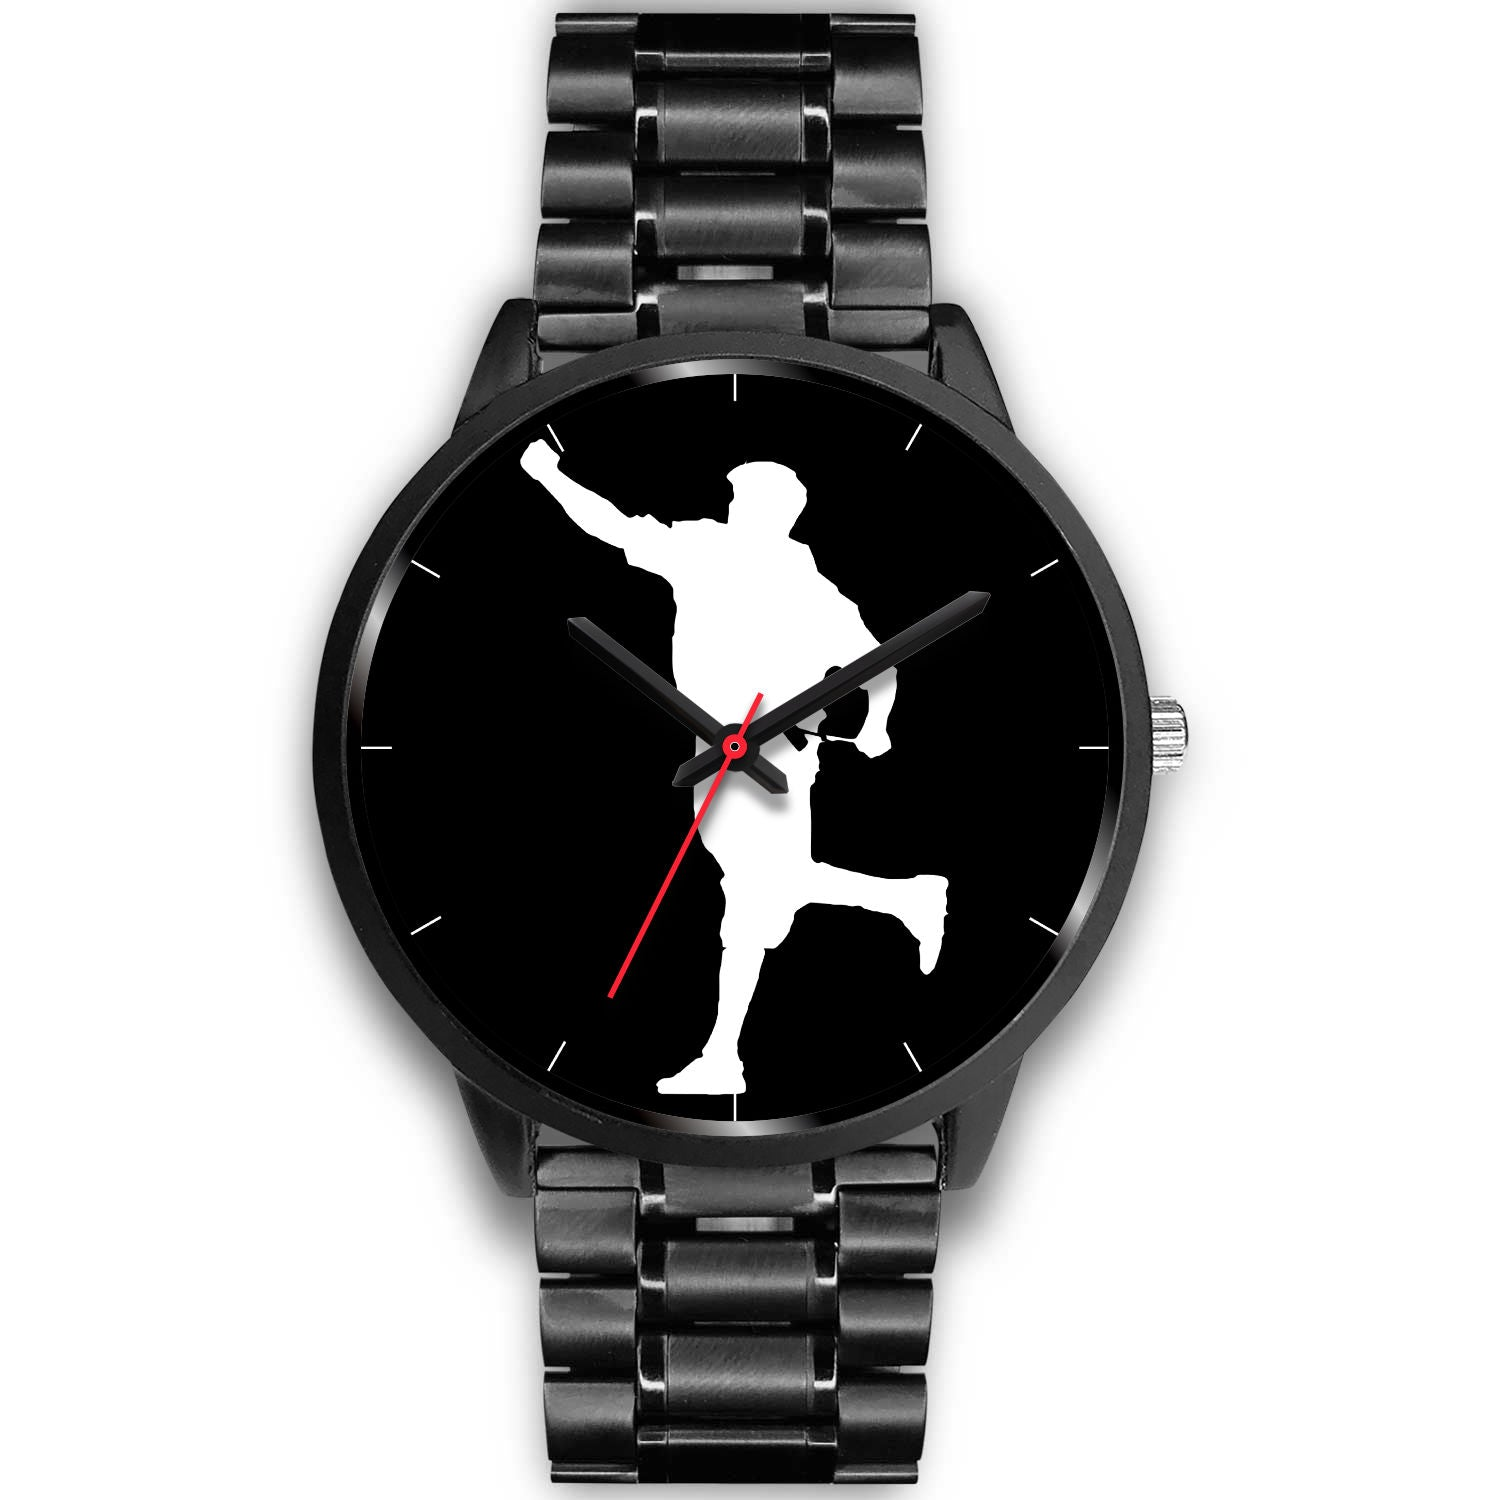 Legends Series Black Golf Watch - Payne